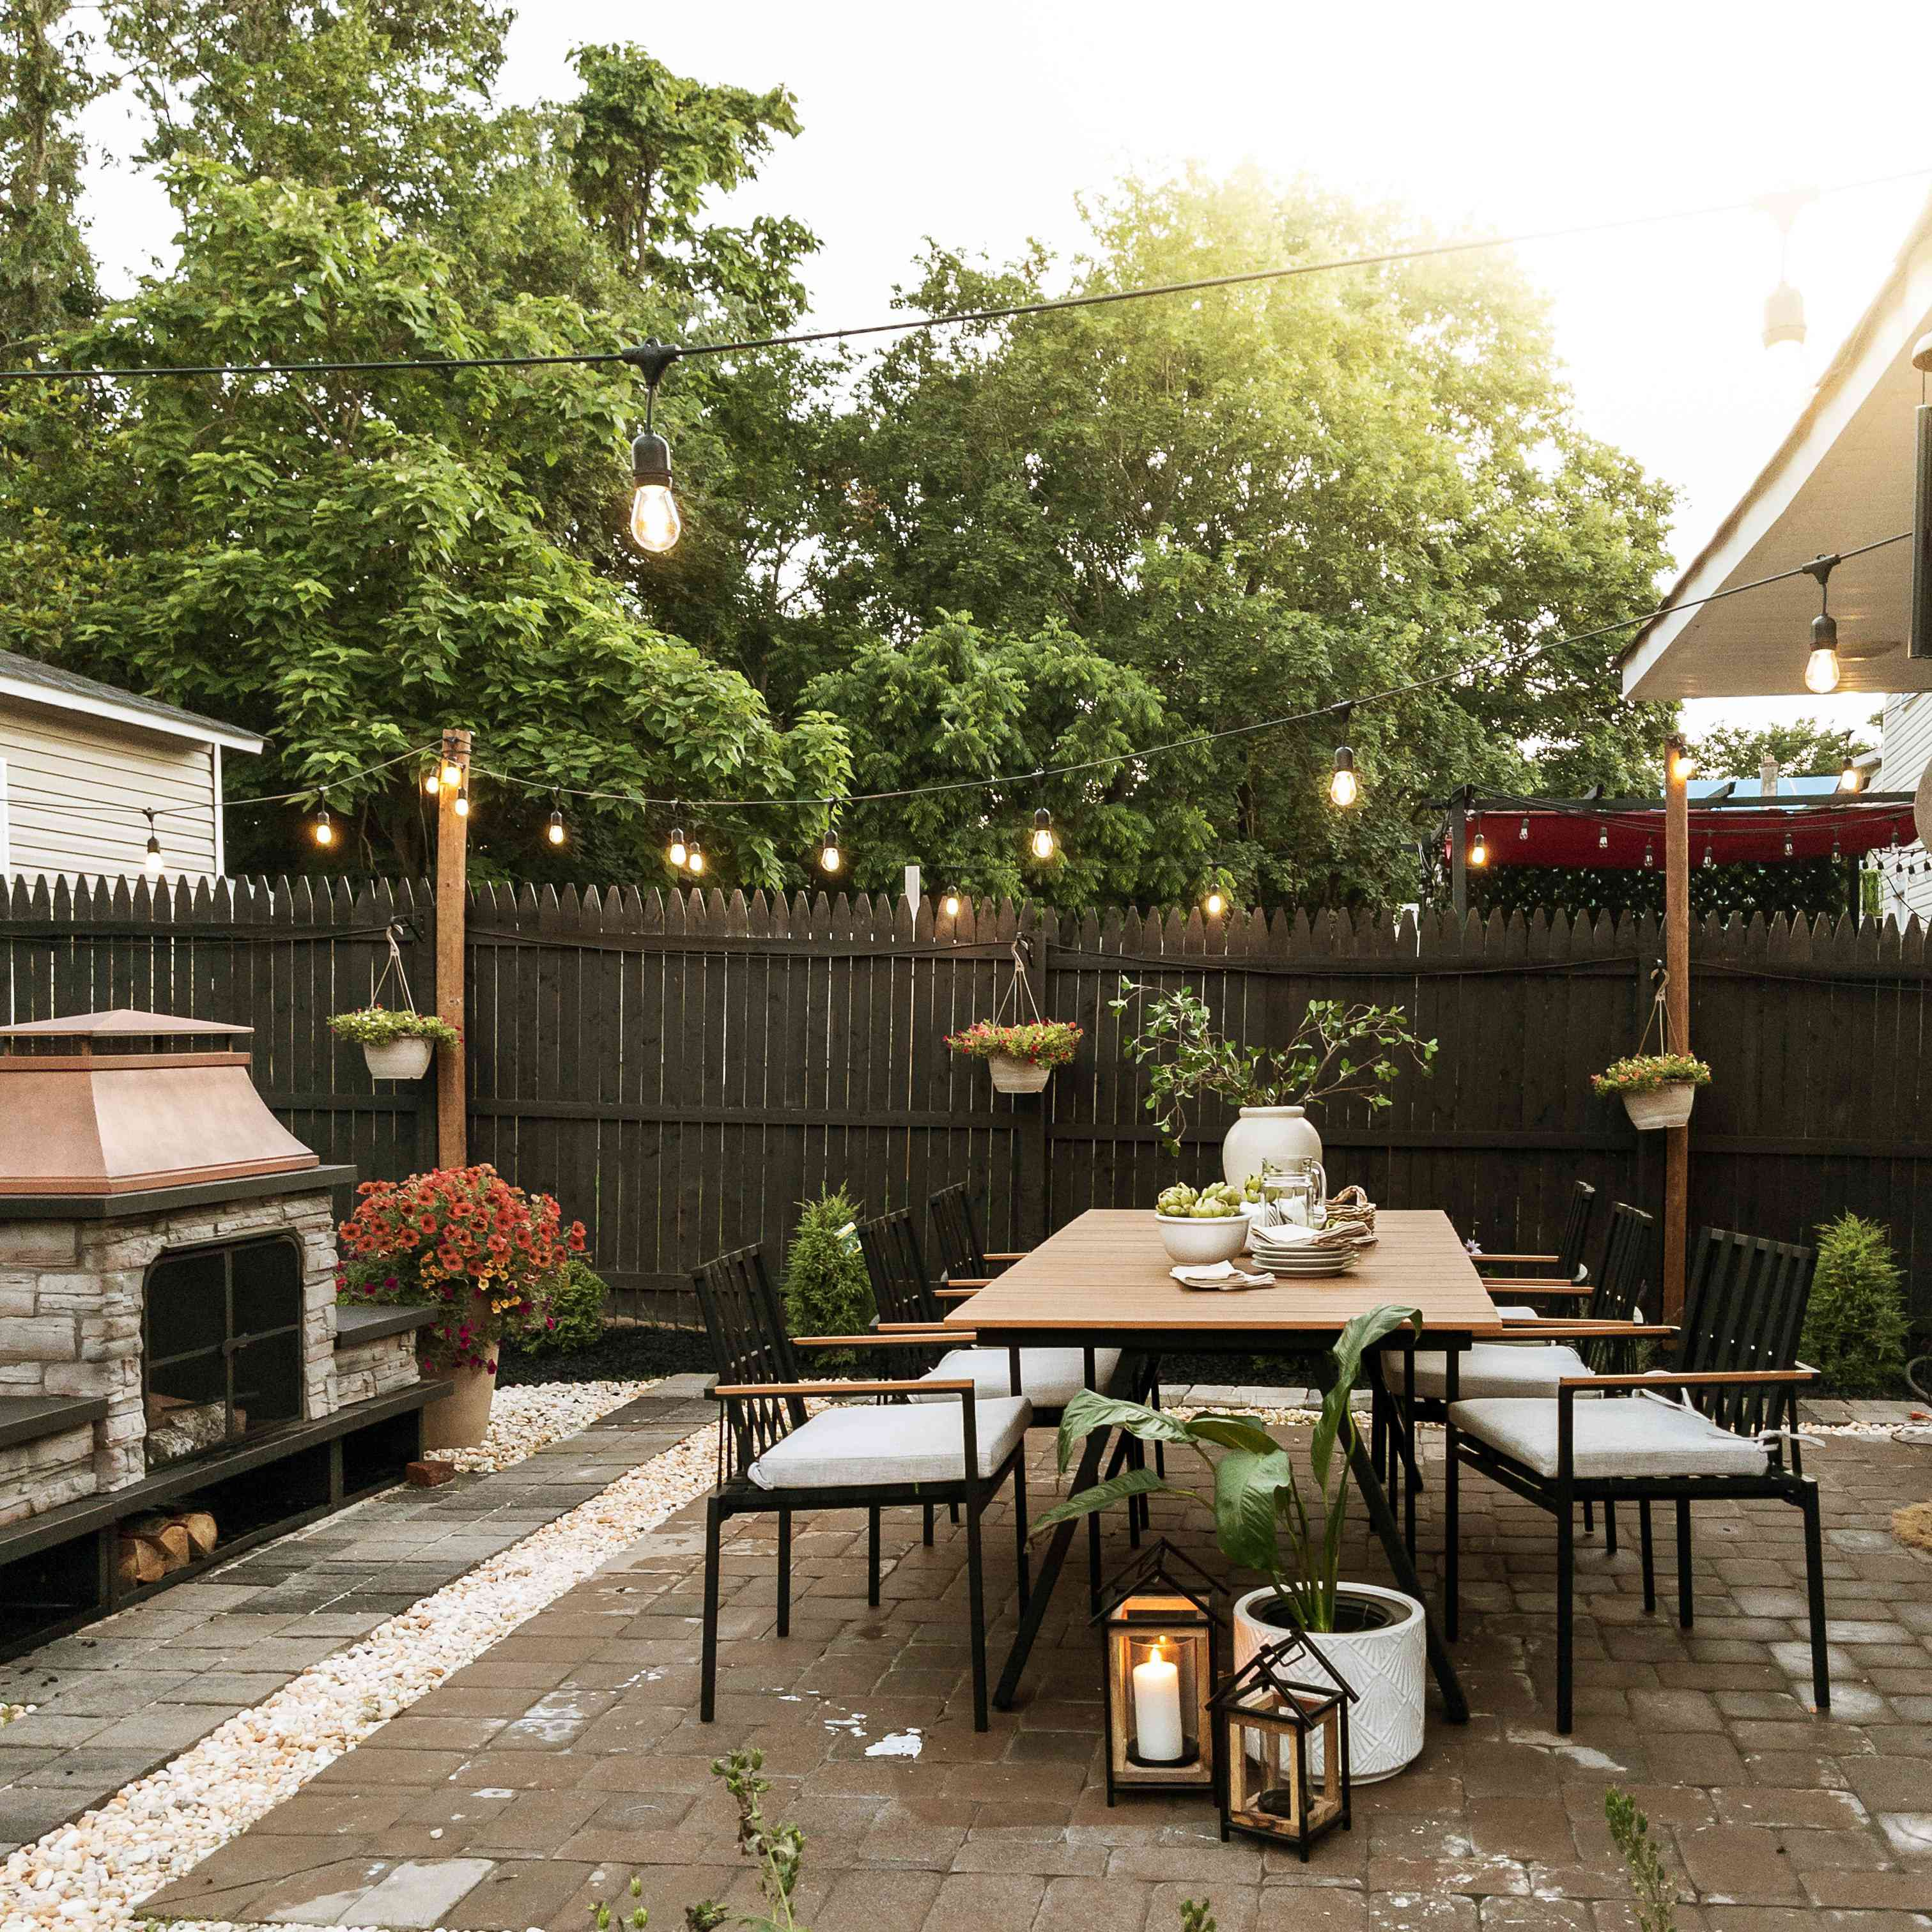 the patio has a huge dining table and a fire pit, along with string lights and lanterns and plants